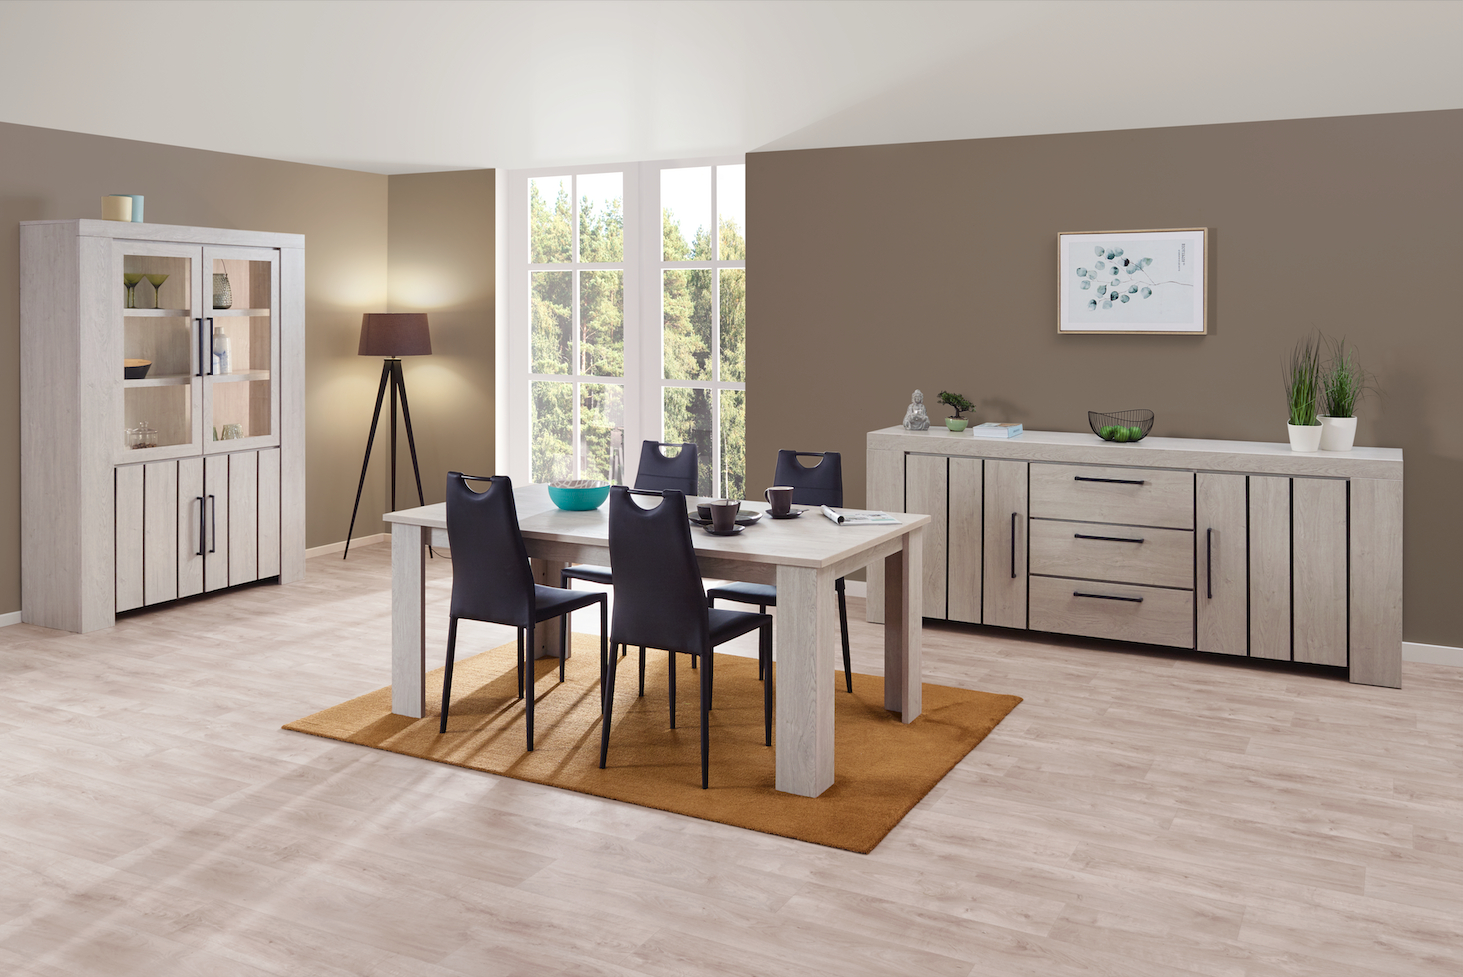 Meubis Pertaining To Preferred Giles 3 Piece Dining Sets (View 21 of 25)